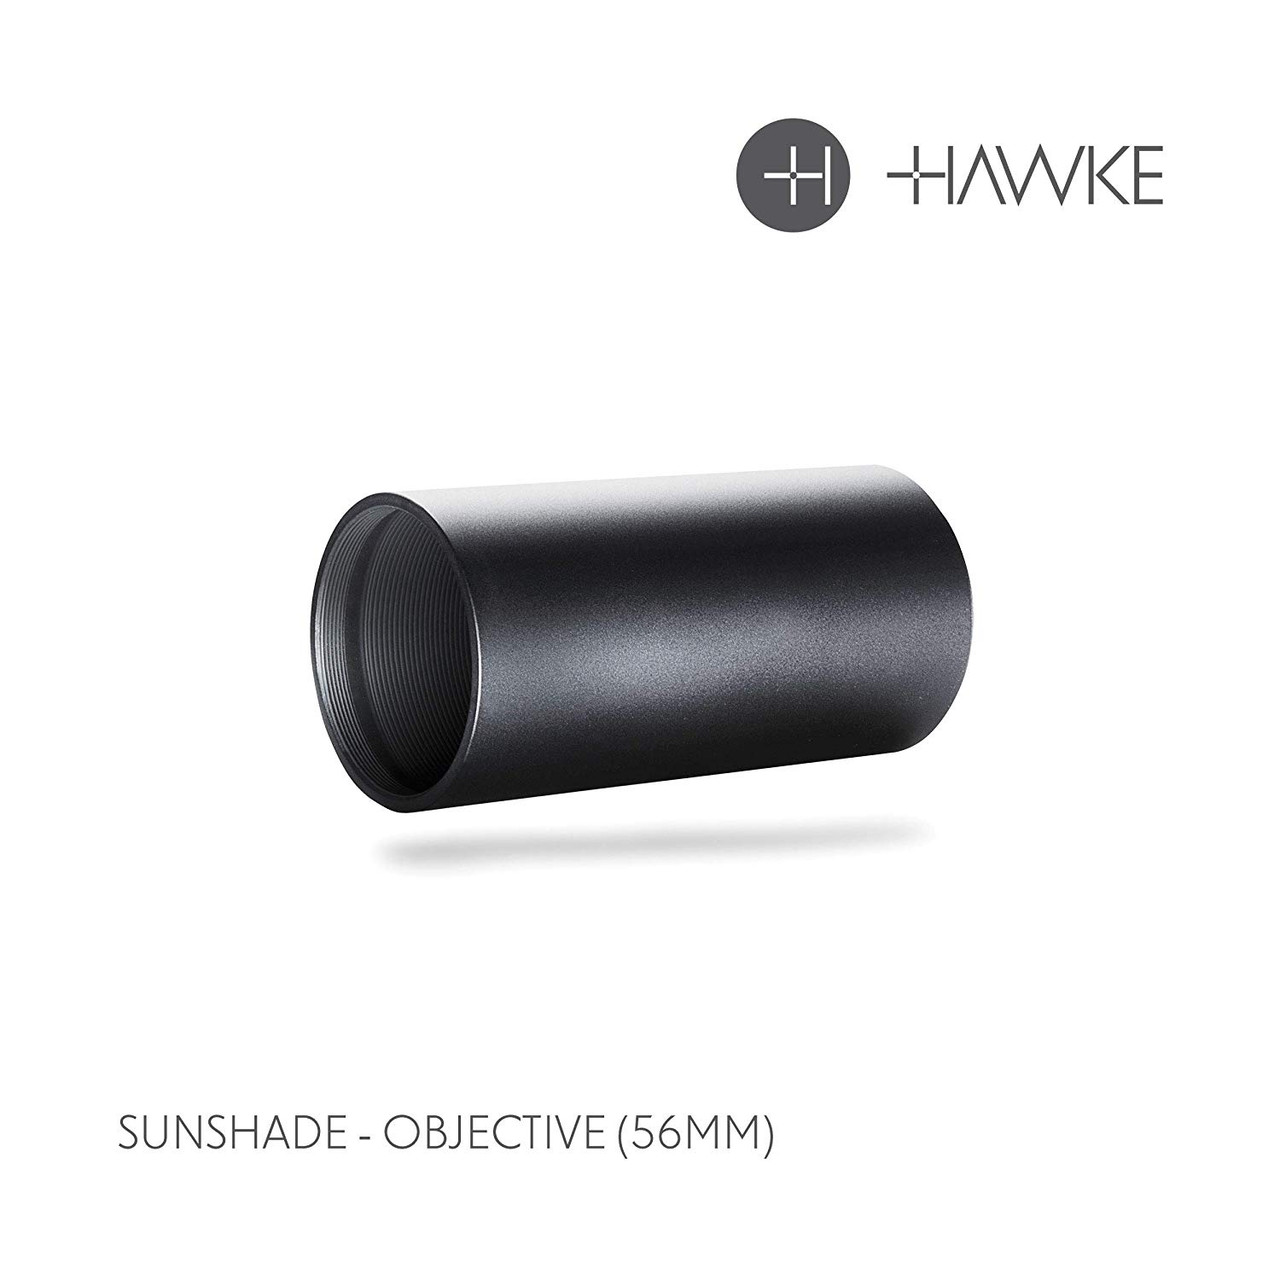 Hawke Rifle Scope Sunshade, Black, 56mm Obj 62012